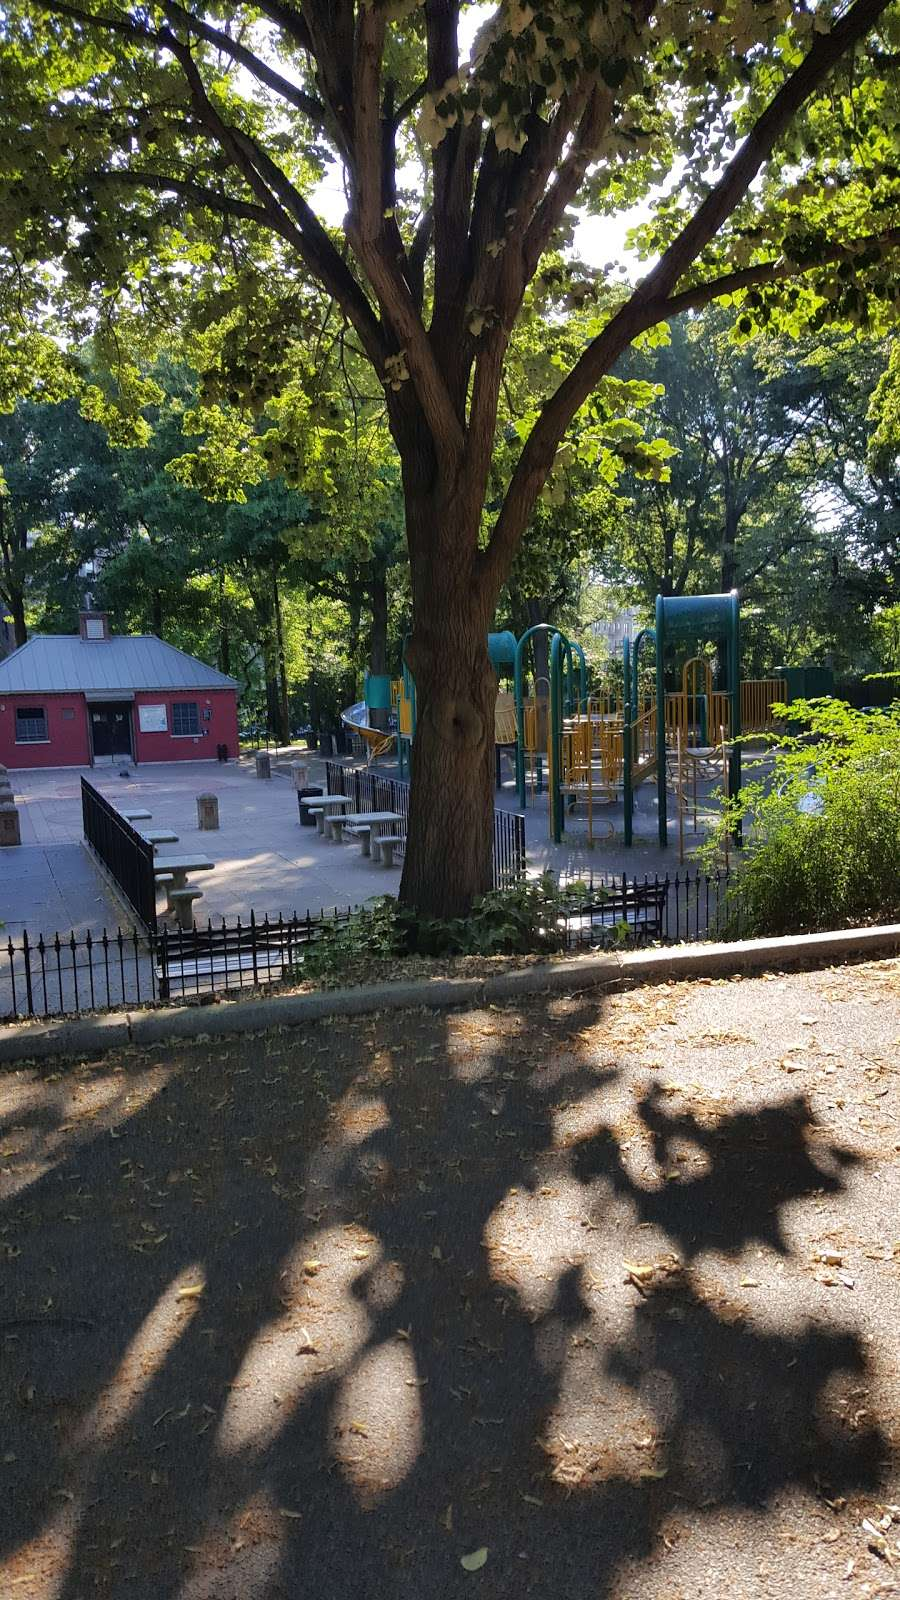 Mount Prospect Park - park  | Photo 10 of 10 | Address: Eastern Pkwy, Brooklyn, NY 11238, USA | Phone: (212) 639-9675